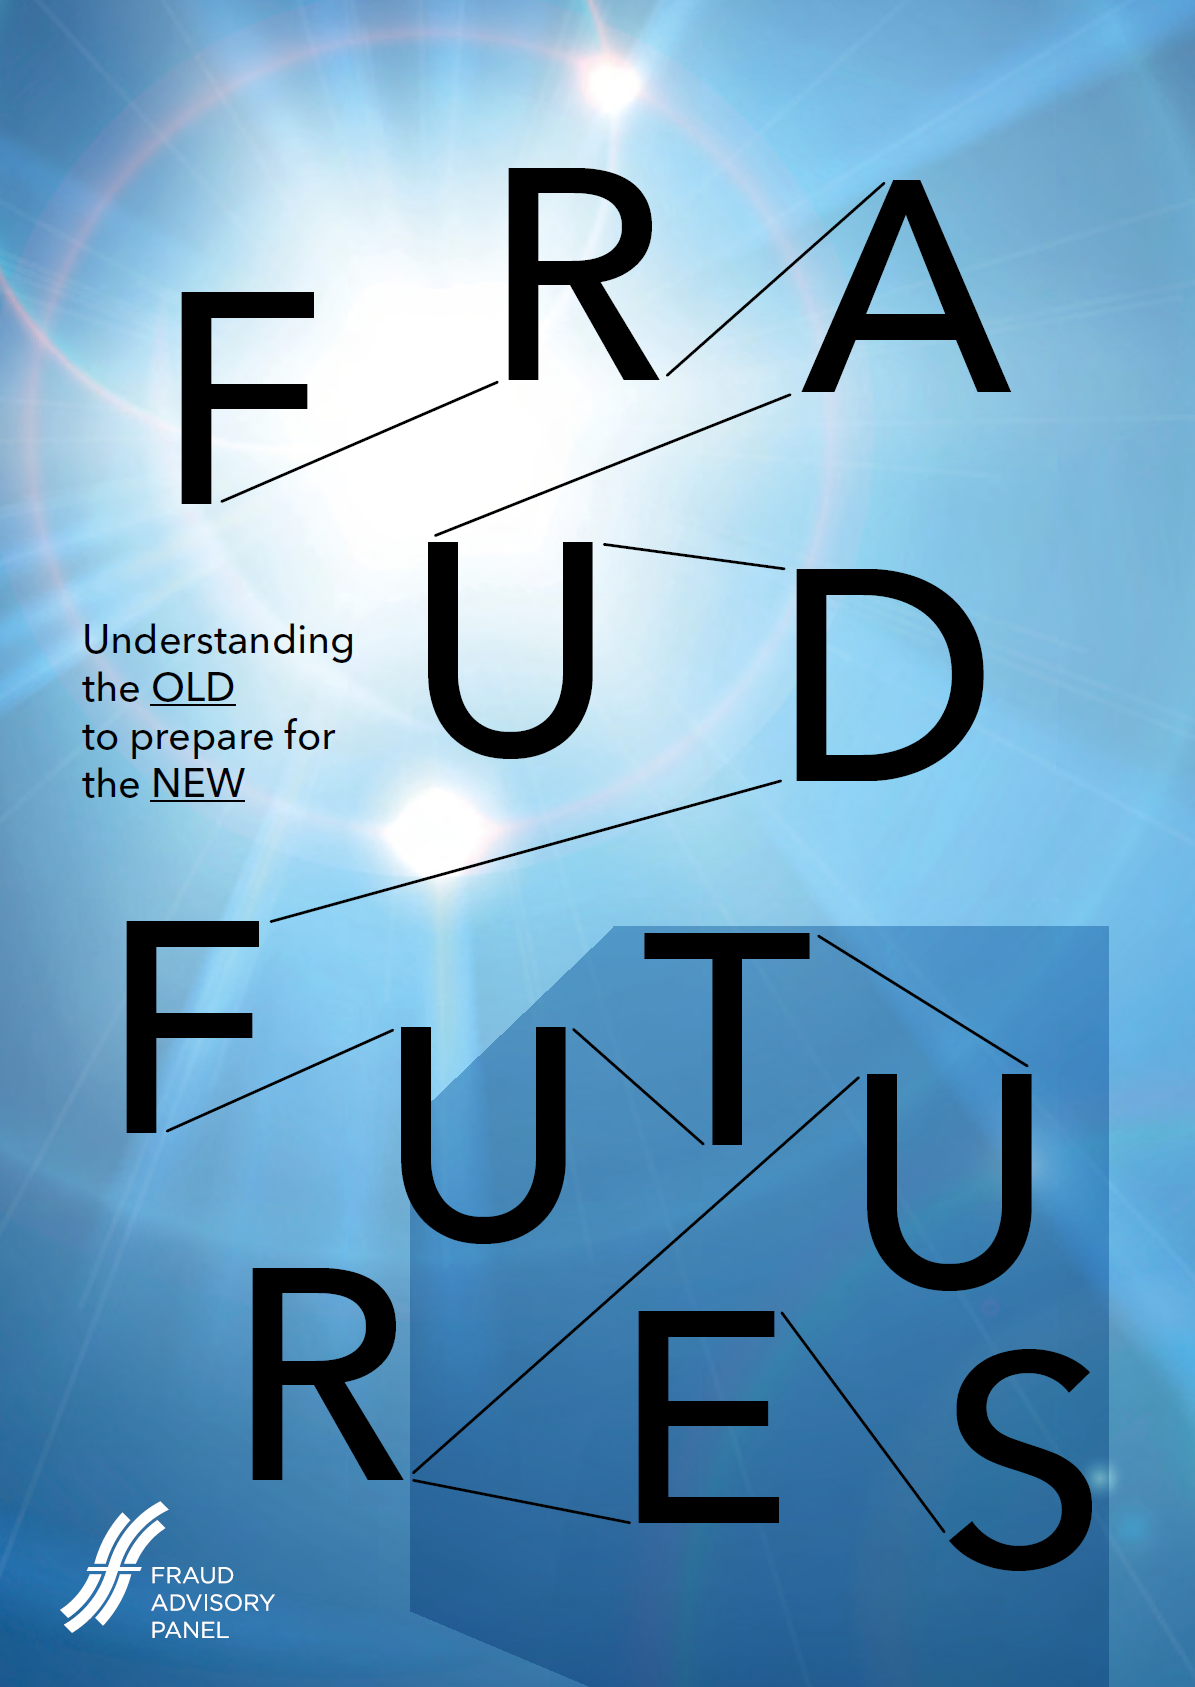 Professor Kevin Curran, Ulster University interviewed in the Fraud Futures Report from the Fraud Advisory Panel discussing the major implications of blockchain in the future security ecosystem.